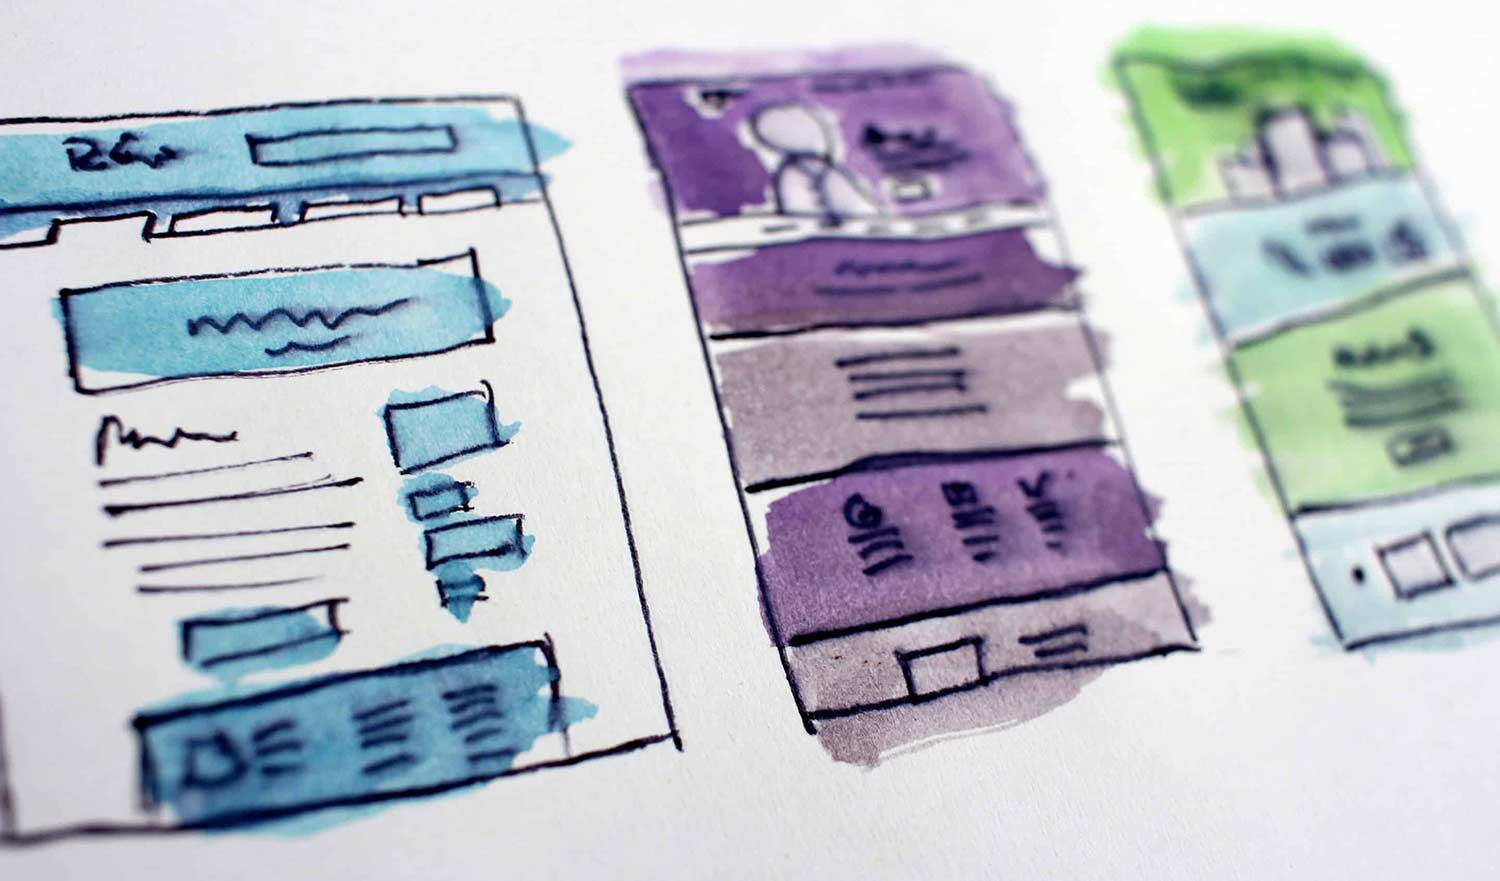 User experience design sketches for a custom website